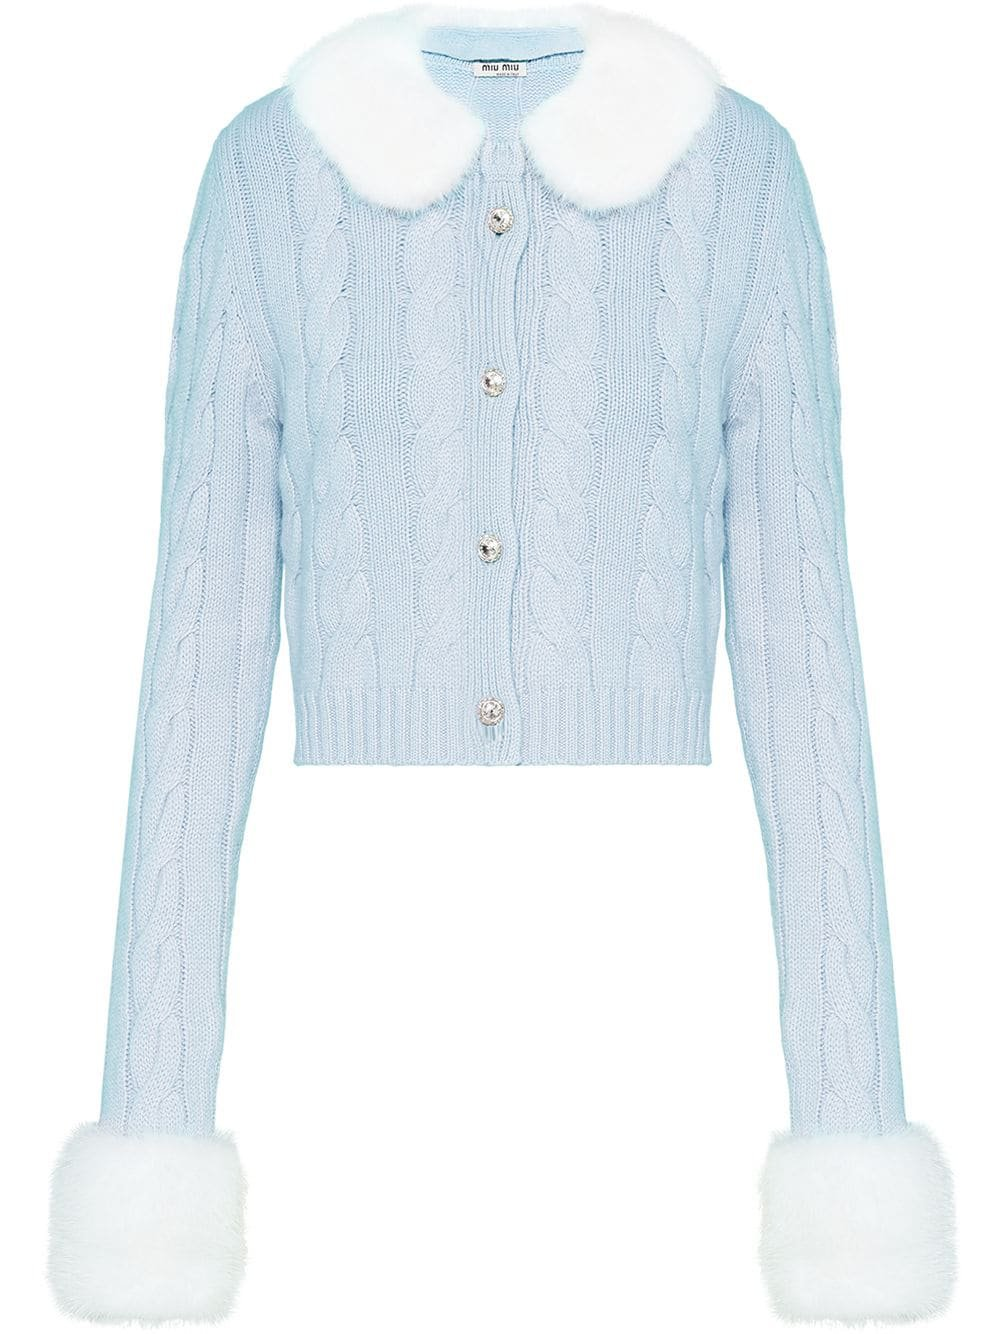 Miu Miu Fur Trim Cardigan